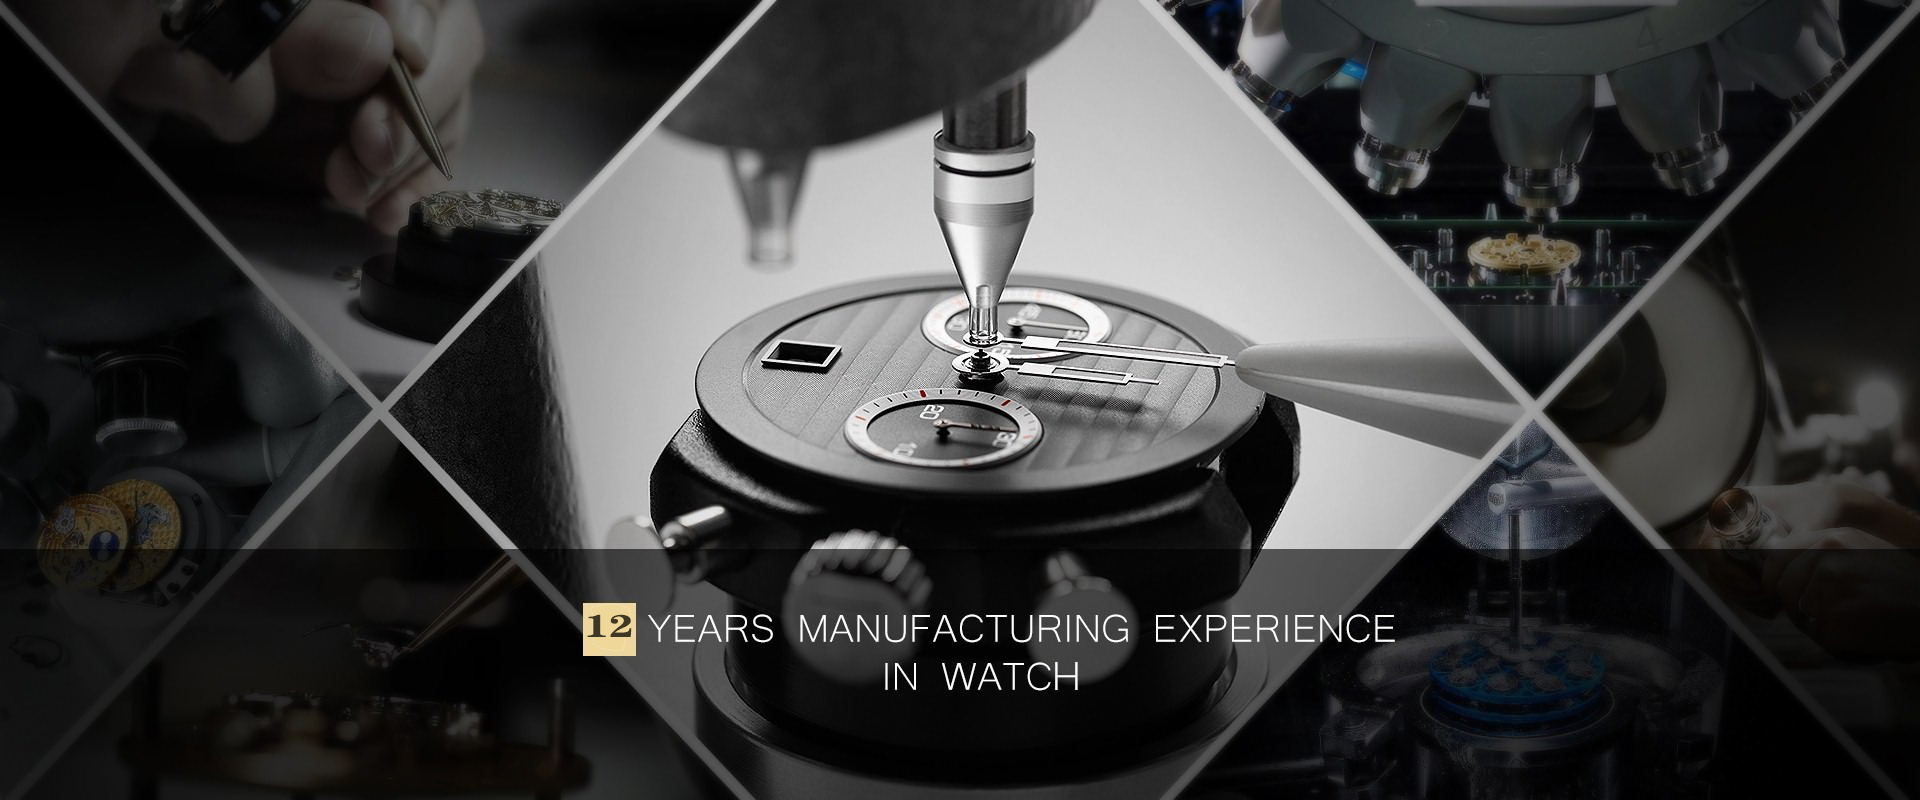 12 years watch supplier